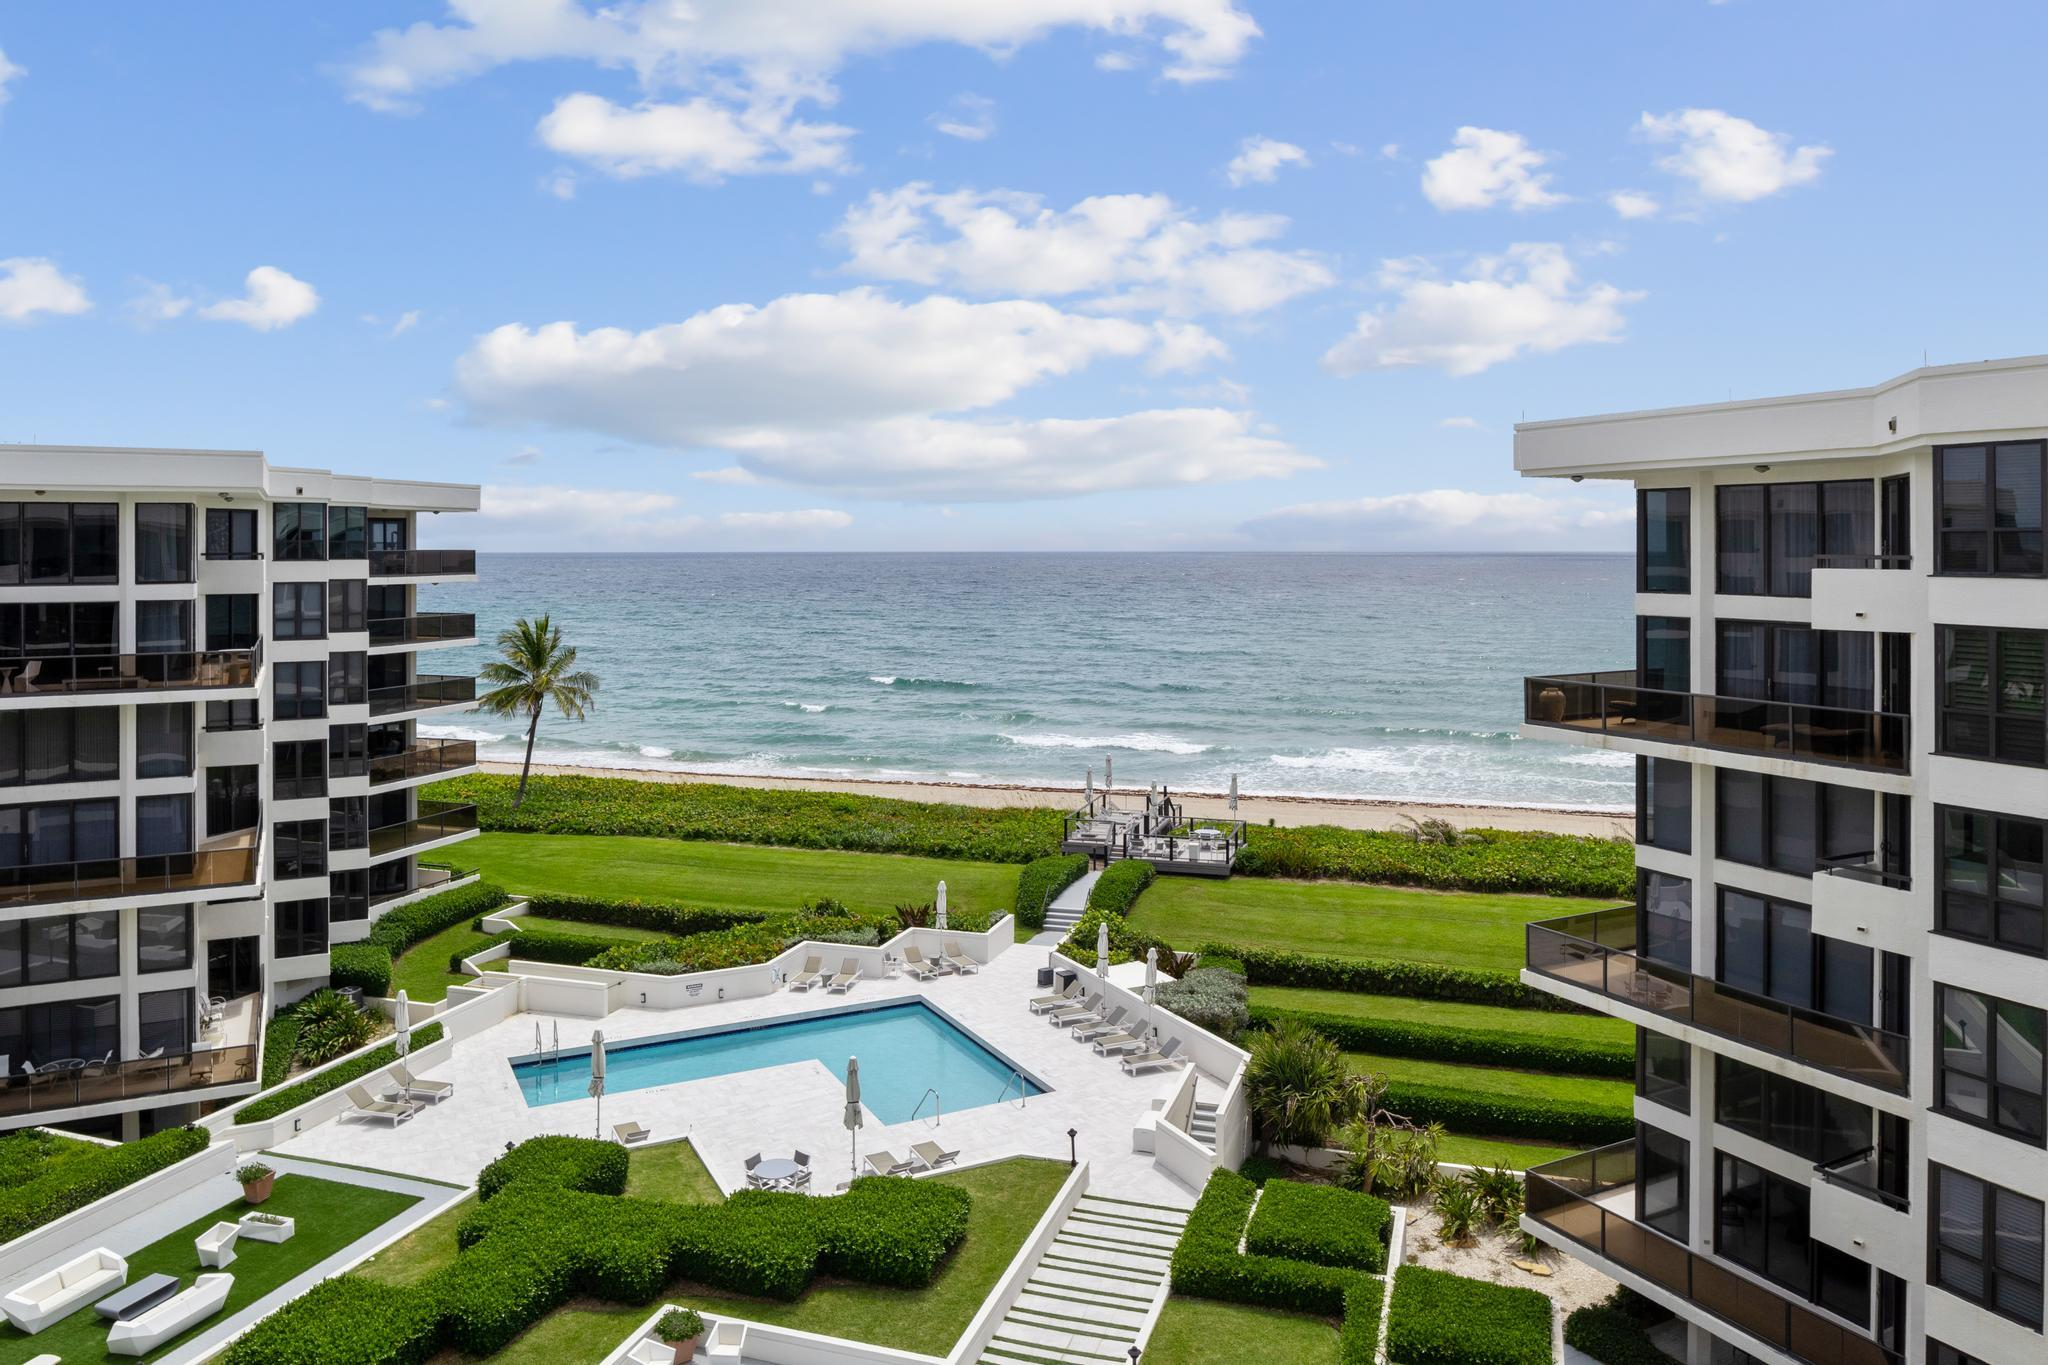 BELOW MARKET 3 BEDROOM OCEANFRONT PENTHOUSE.  3.5 Baths, IMPACT WINDOWS AND DOORS, Ocean and/or Intracoastal Views from EVERY Room, including Master Bath.  3 Balconies to view amazing sunrises and sunsets.  Desirable Boutique Building (Only 45 units) includes garage parking, 24 hour gateman, new pool area with Oceanfront sundeck., beautiful beach, tennis, boat slips available, Fitness,Close to restaurants, 5 star resorts, shops, etc.